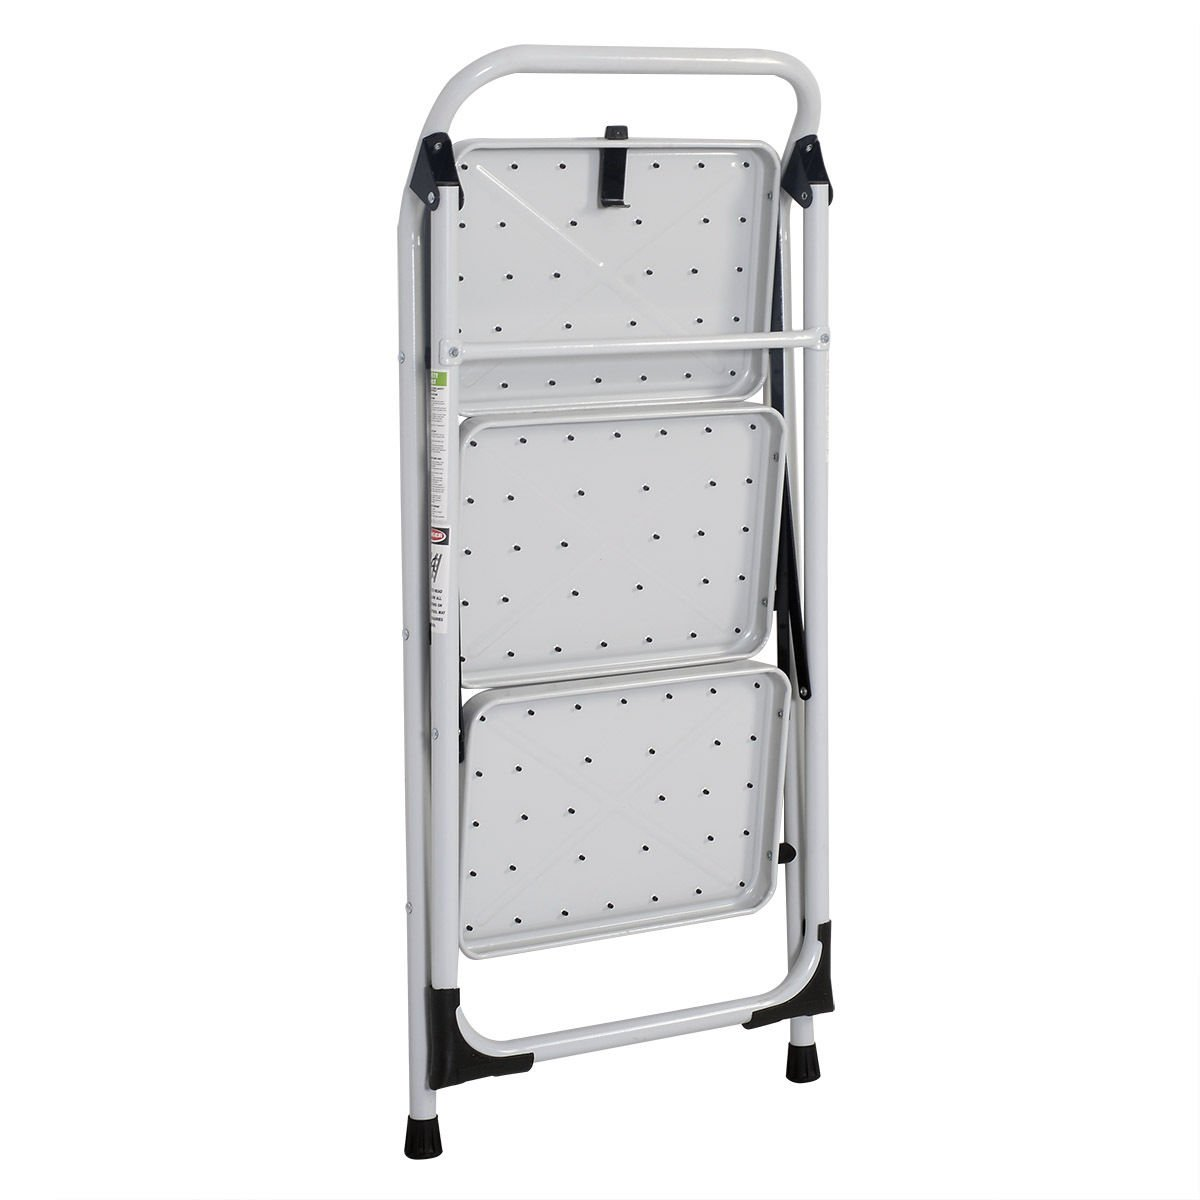 Z ZTDM Portable 3 Step Ladder with 330lbs Capacity Platform Father's Day Gift Lightweight Short Handrail Iron Folding Stool by Z ZTDM (Image #4)